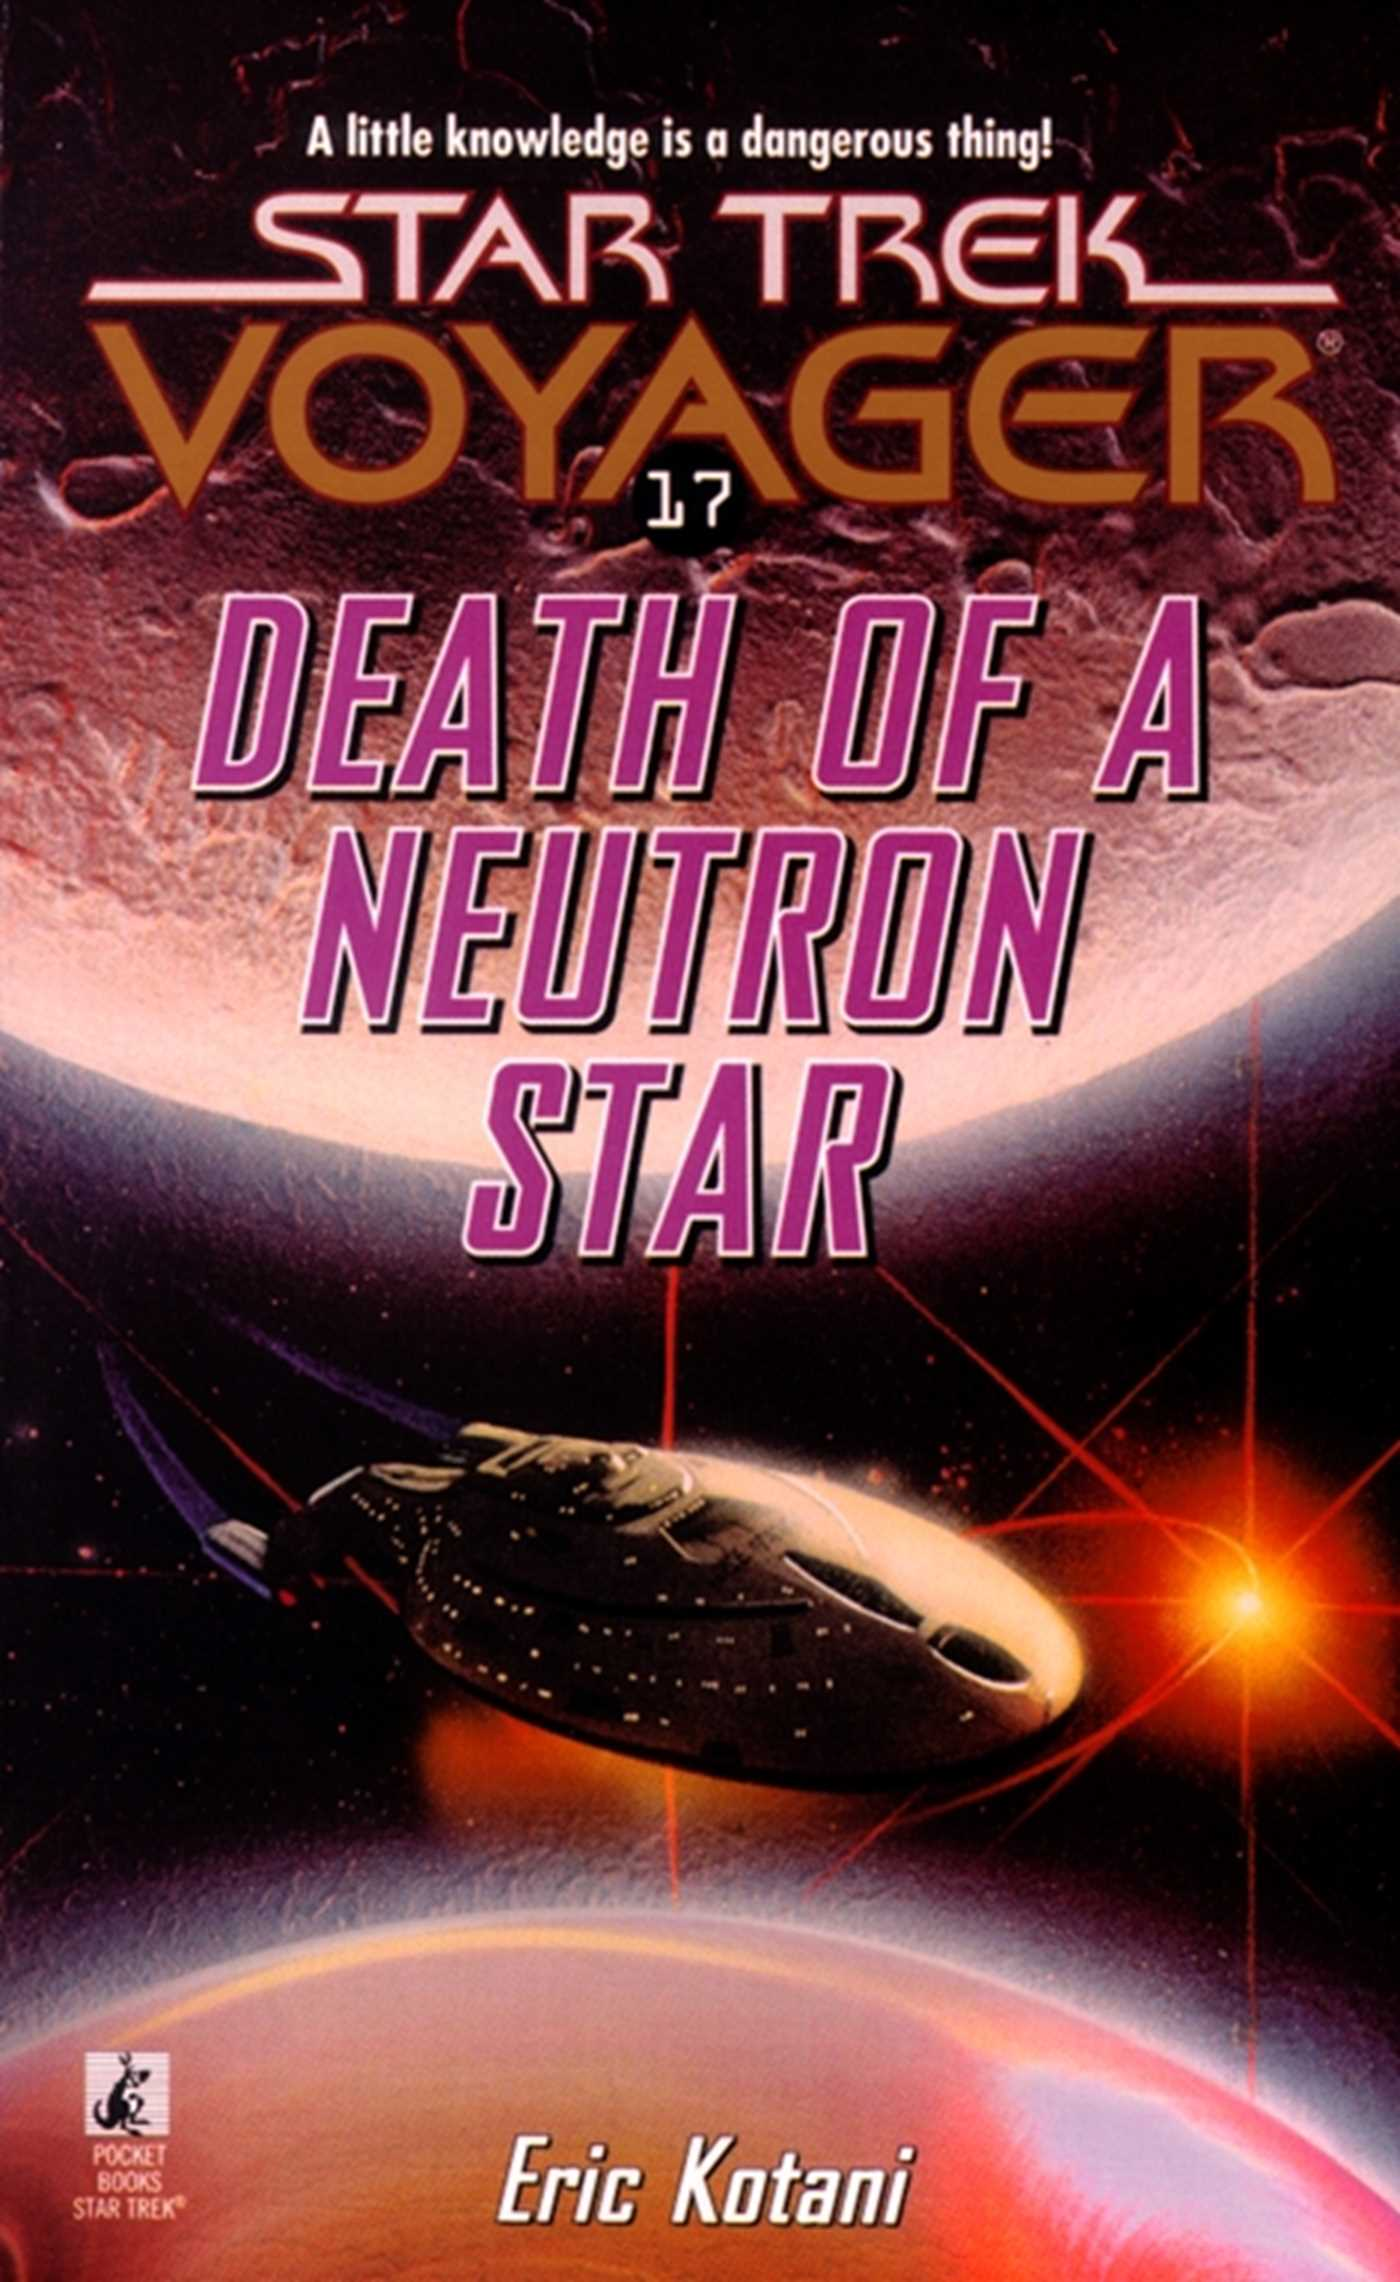 Death of a neutron star 9780743453837 hr